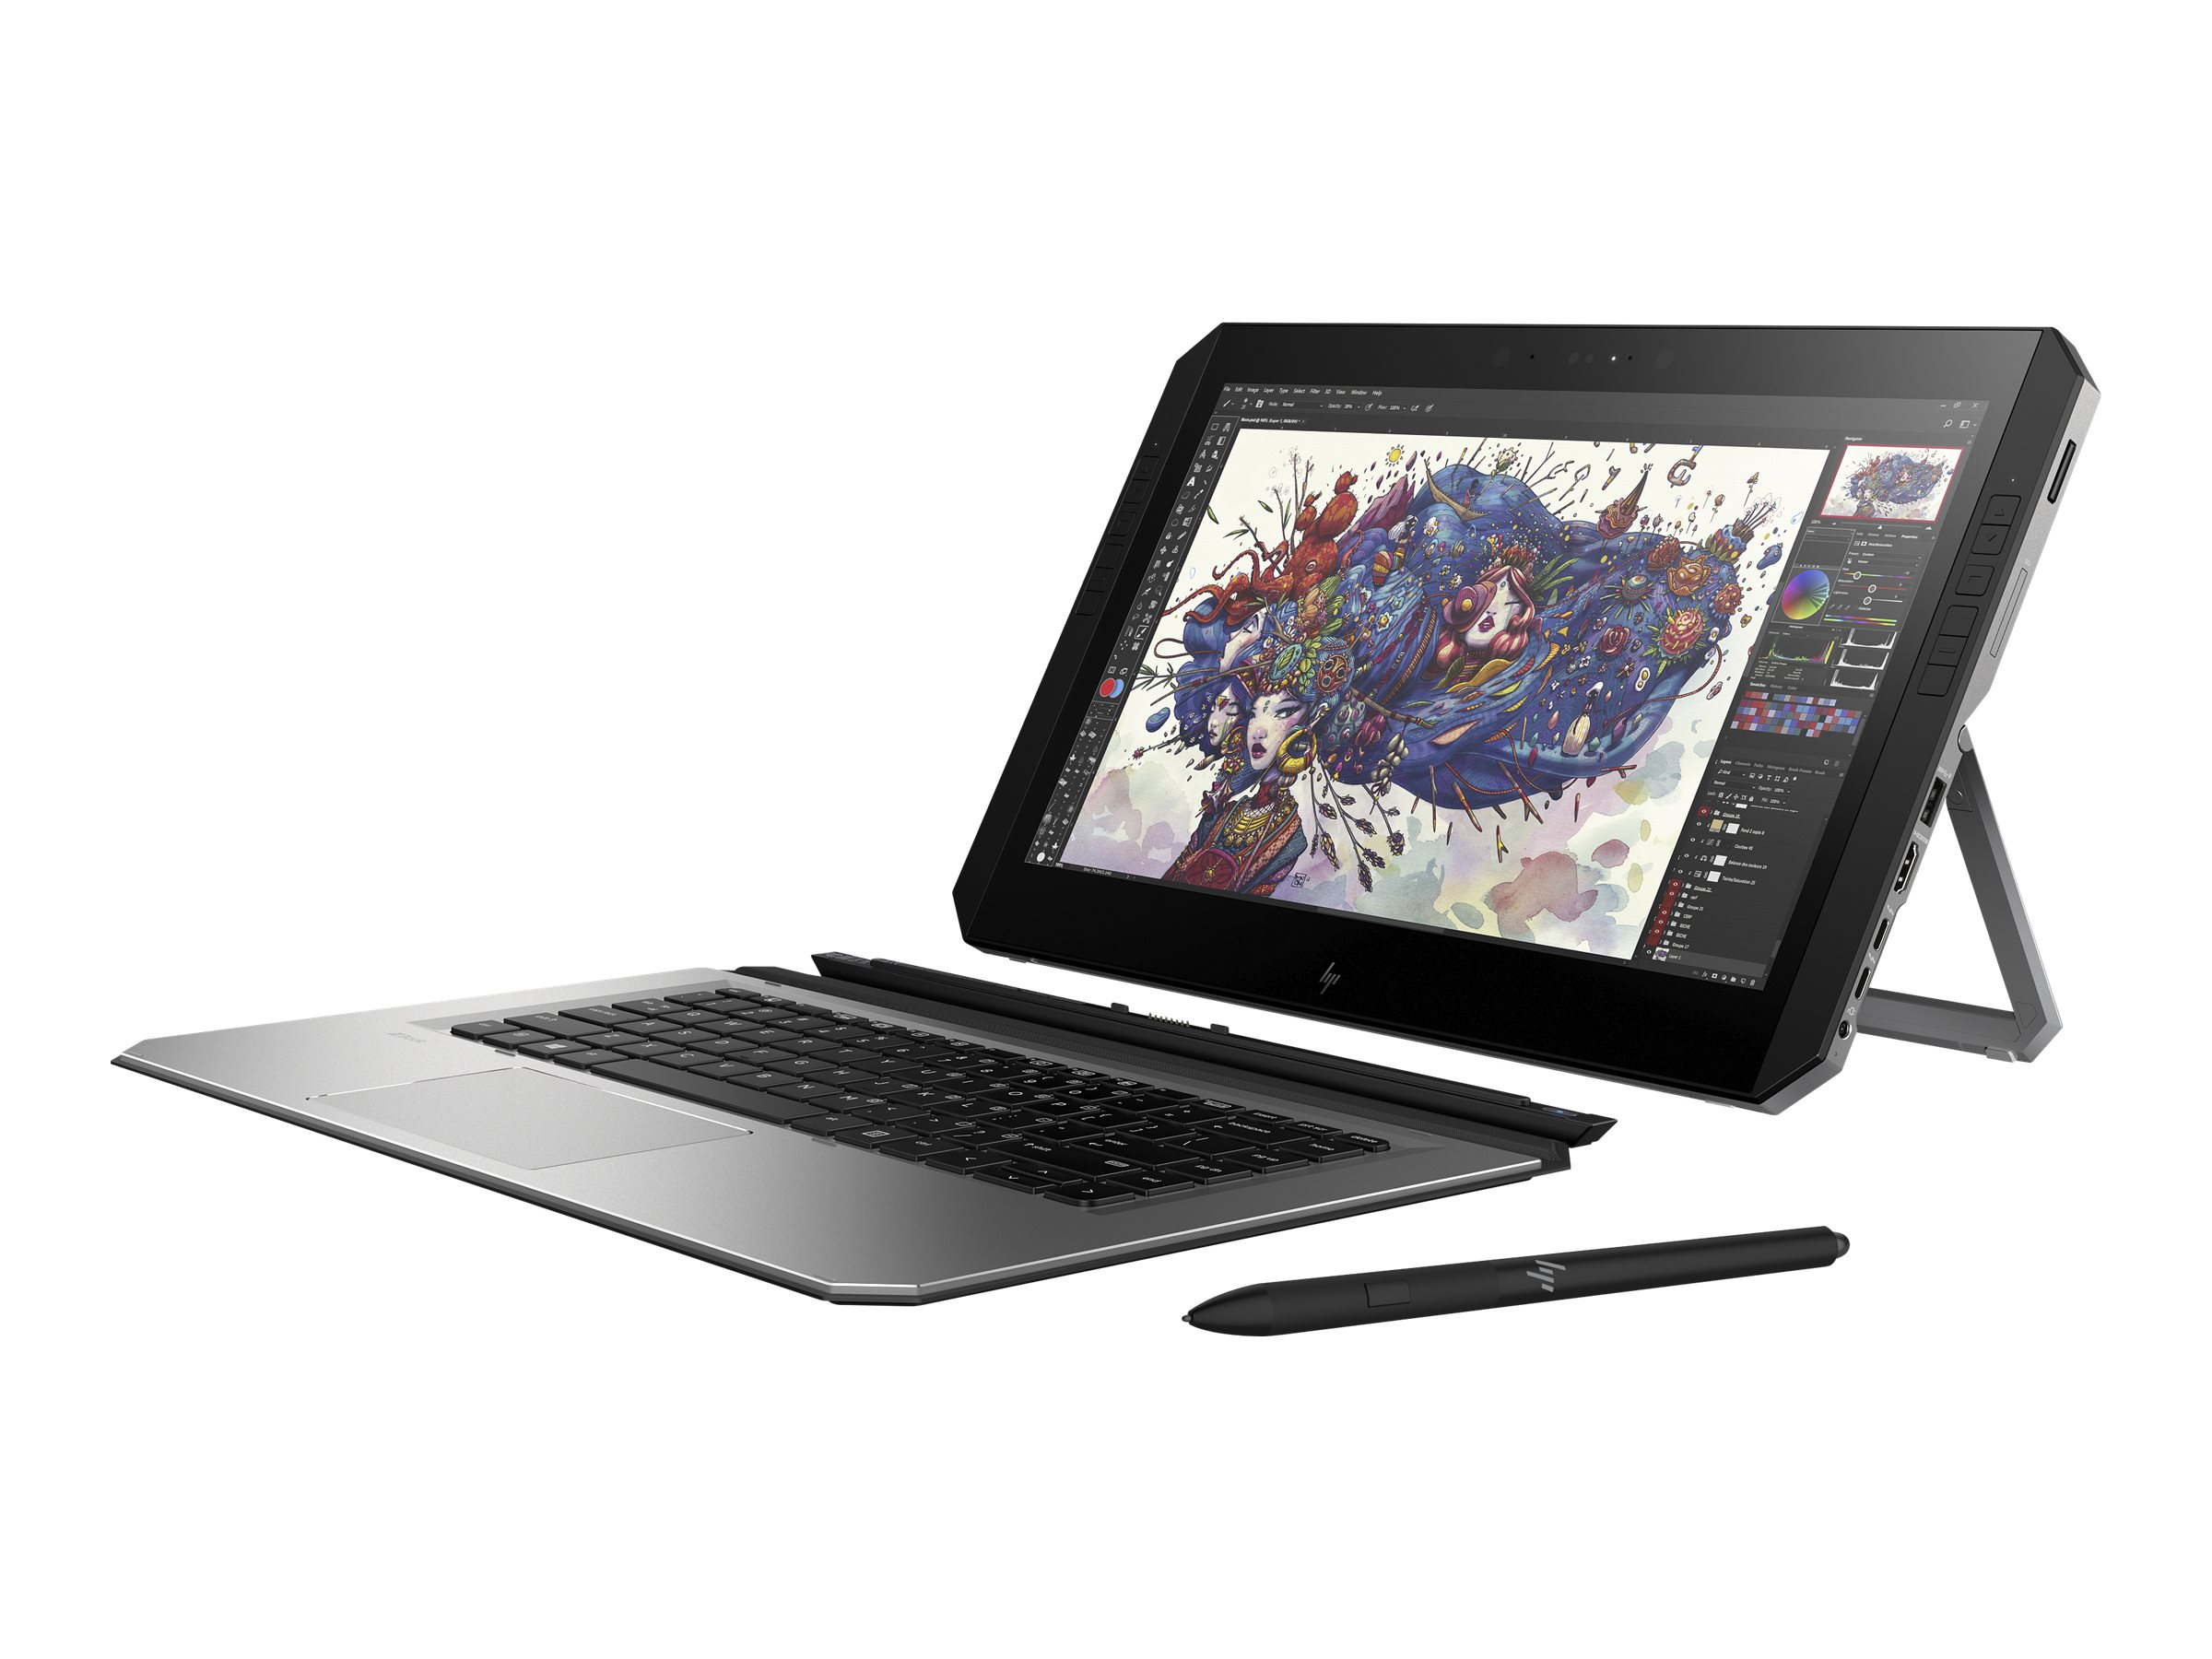 HP ZBook x2 G4 Detachable Workstation - Tablet - mit Bluetooth-Tastatur - Core i7 7500U / 2.7 GHz - Win 10 Pro 64-Bit - 8 GB RAM